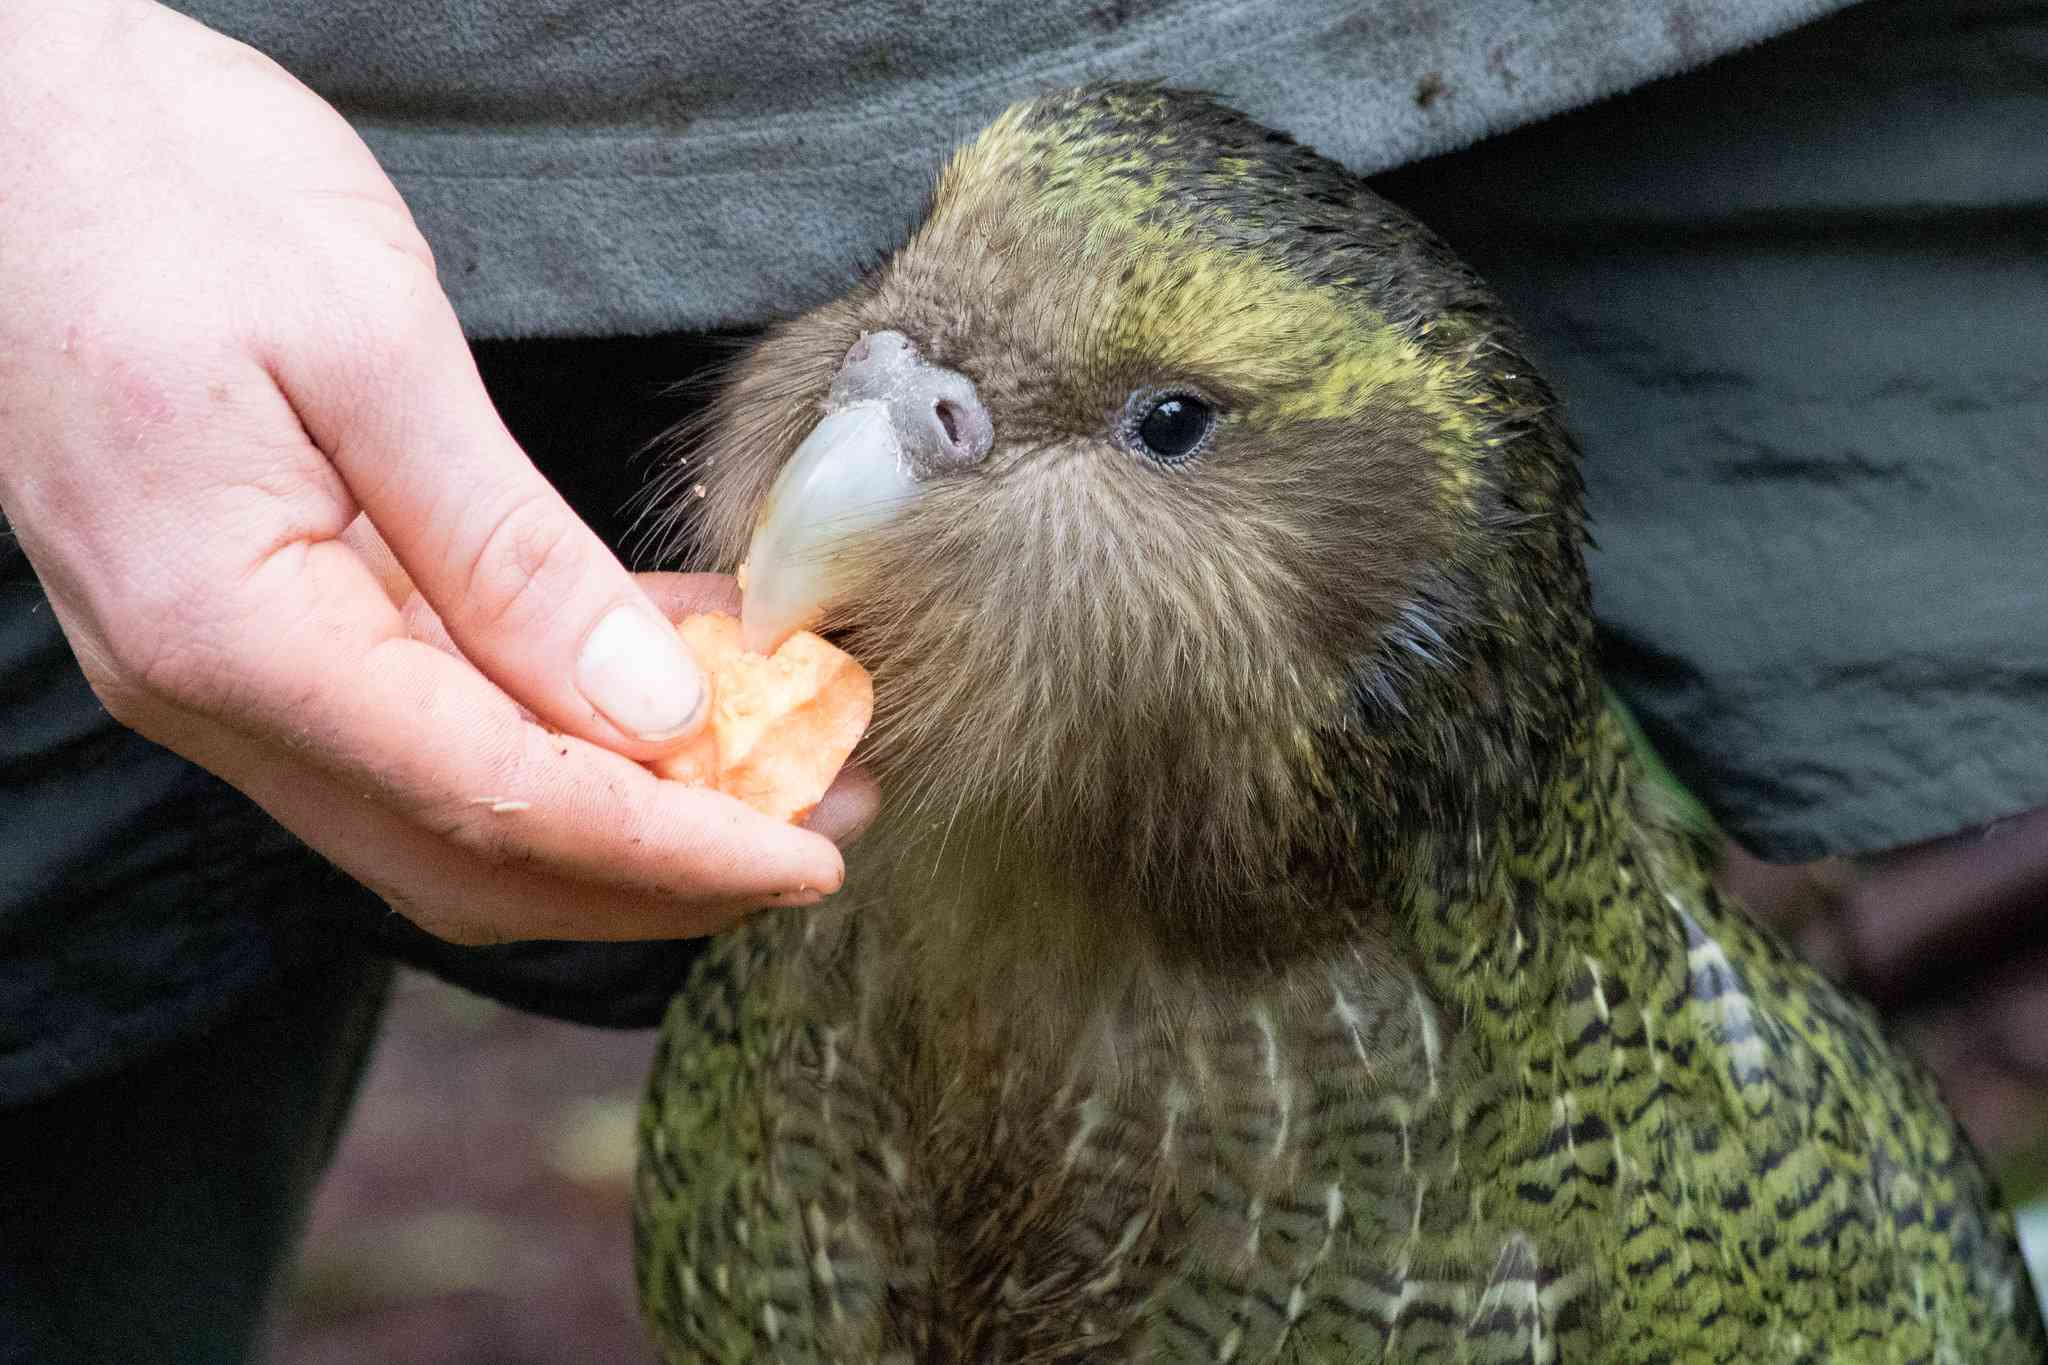 A juvenile Kakapo being fed by a hand.